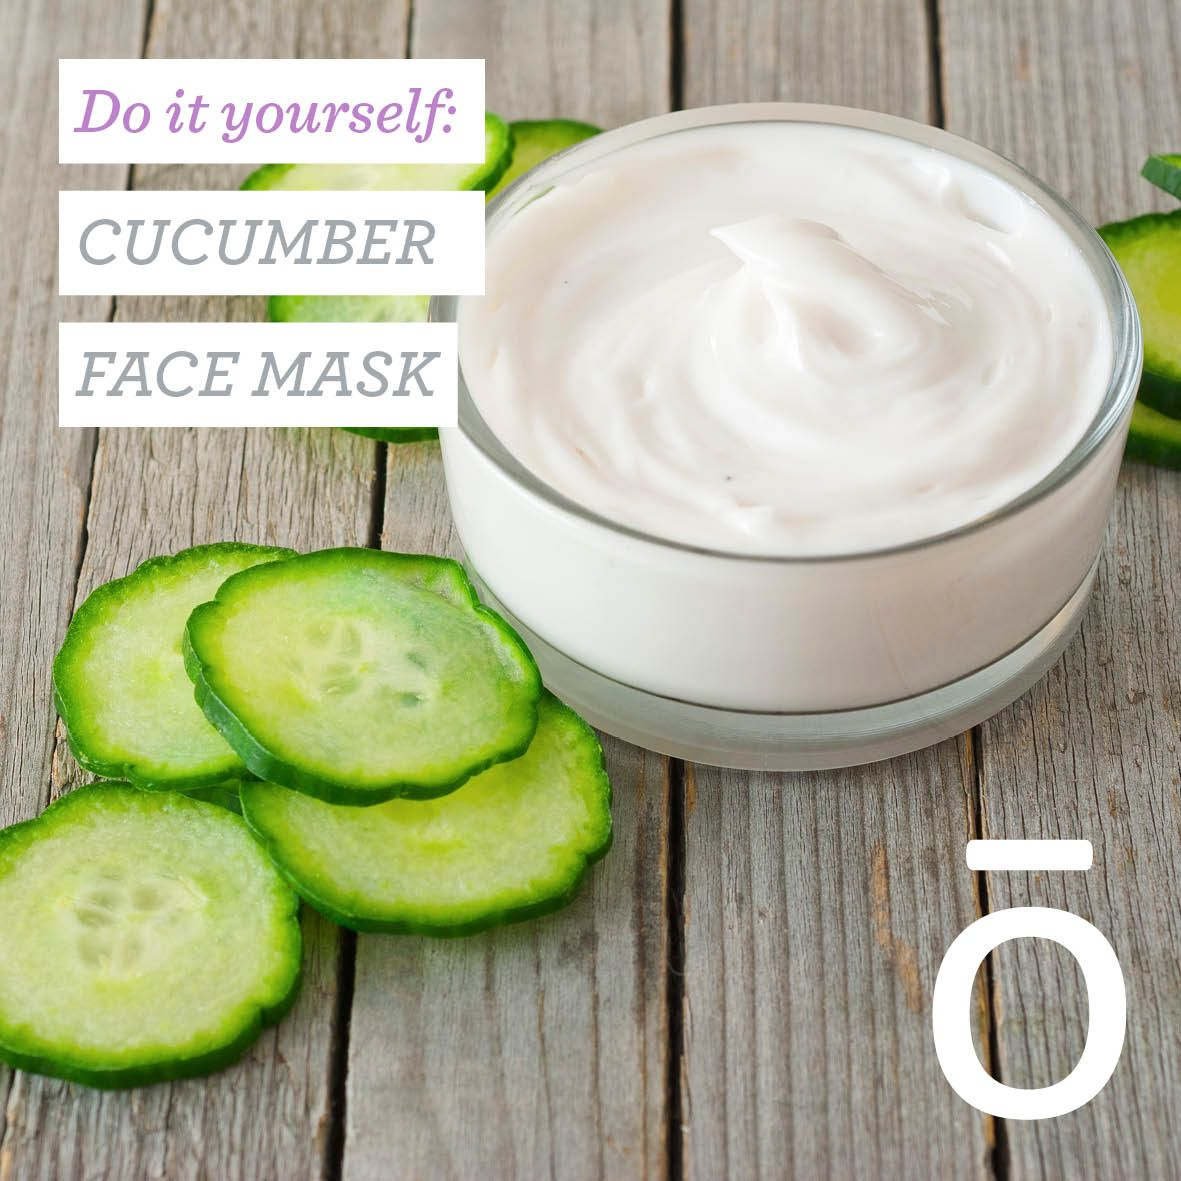 You will need: • 1/2 fresh cucumber •1 tablespoonaloe vera•Coconut oil• 2 tablespoons greek, natural yoghurt • 3 drops dōTERRA Peppermintessential oil Method: 1.Peel cucumber and puree or blend it. 2.Combine blended cucumber with, yogurt, aloe vera and Peppermint essential oil.3.If you have extra dry skin, add a dash of …